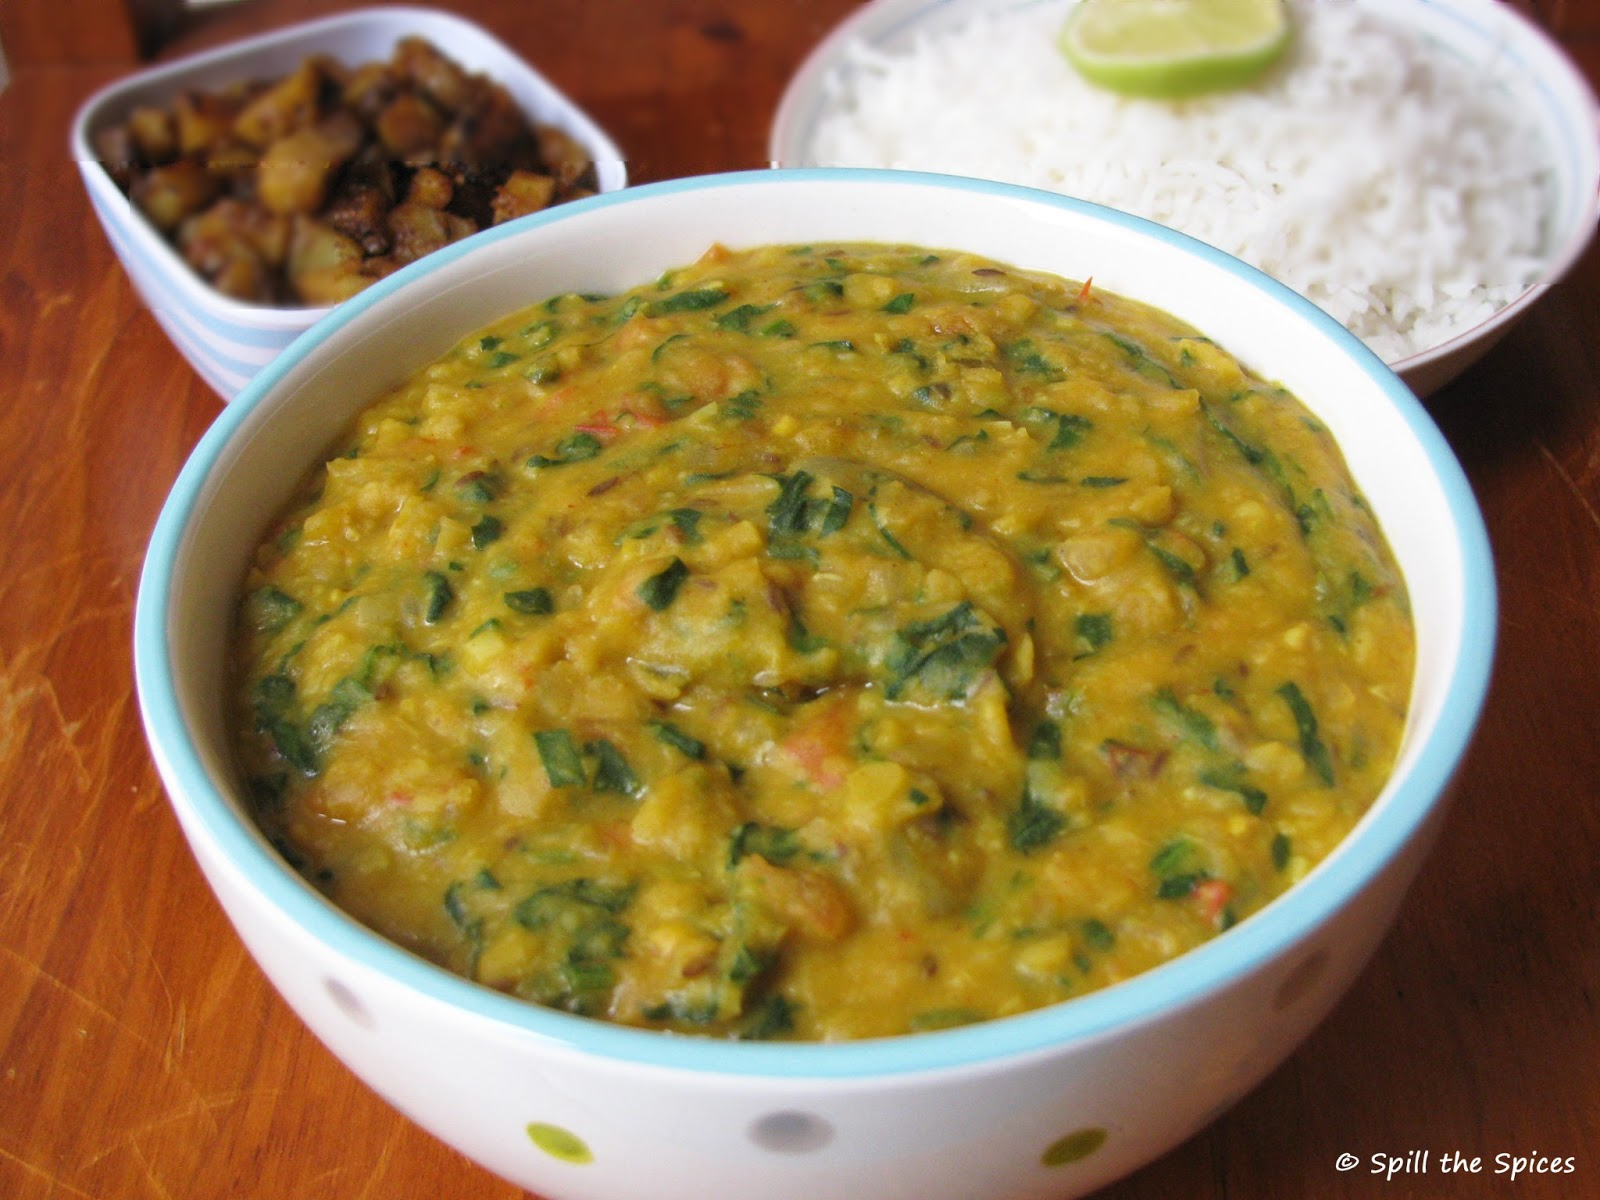 garlic and make a garlicky palak dal for a change